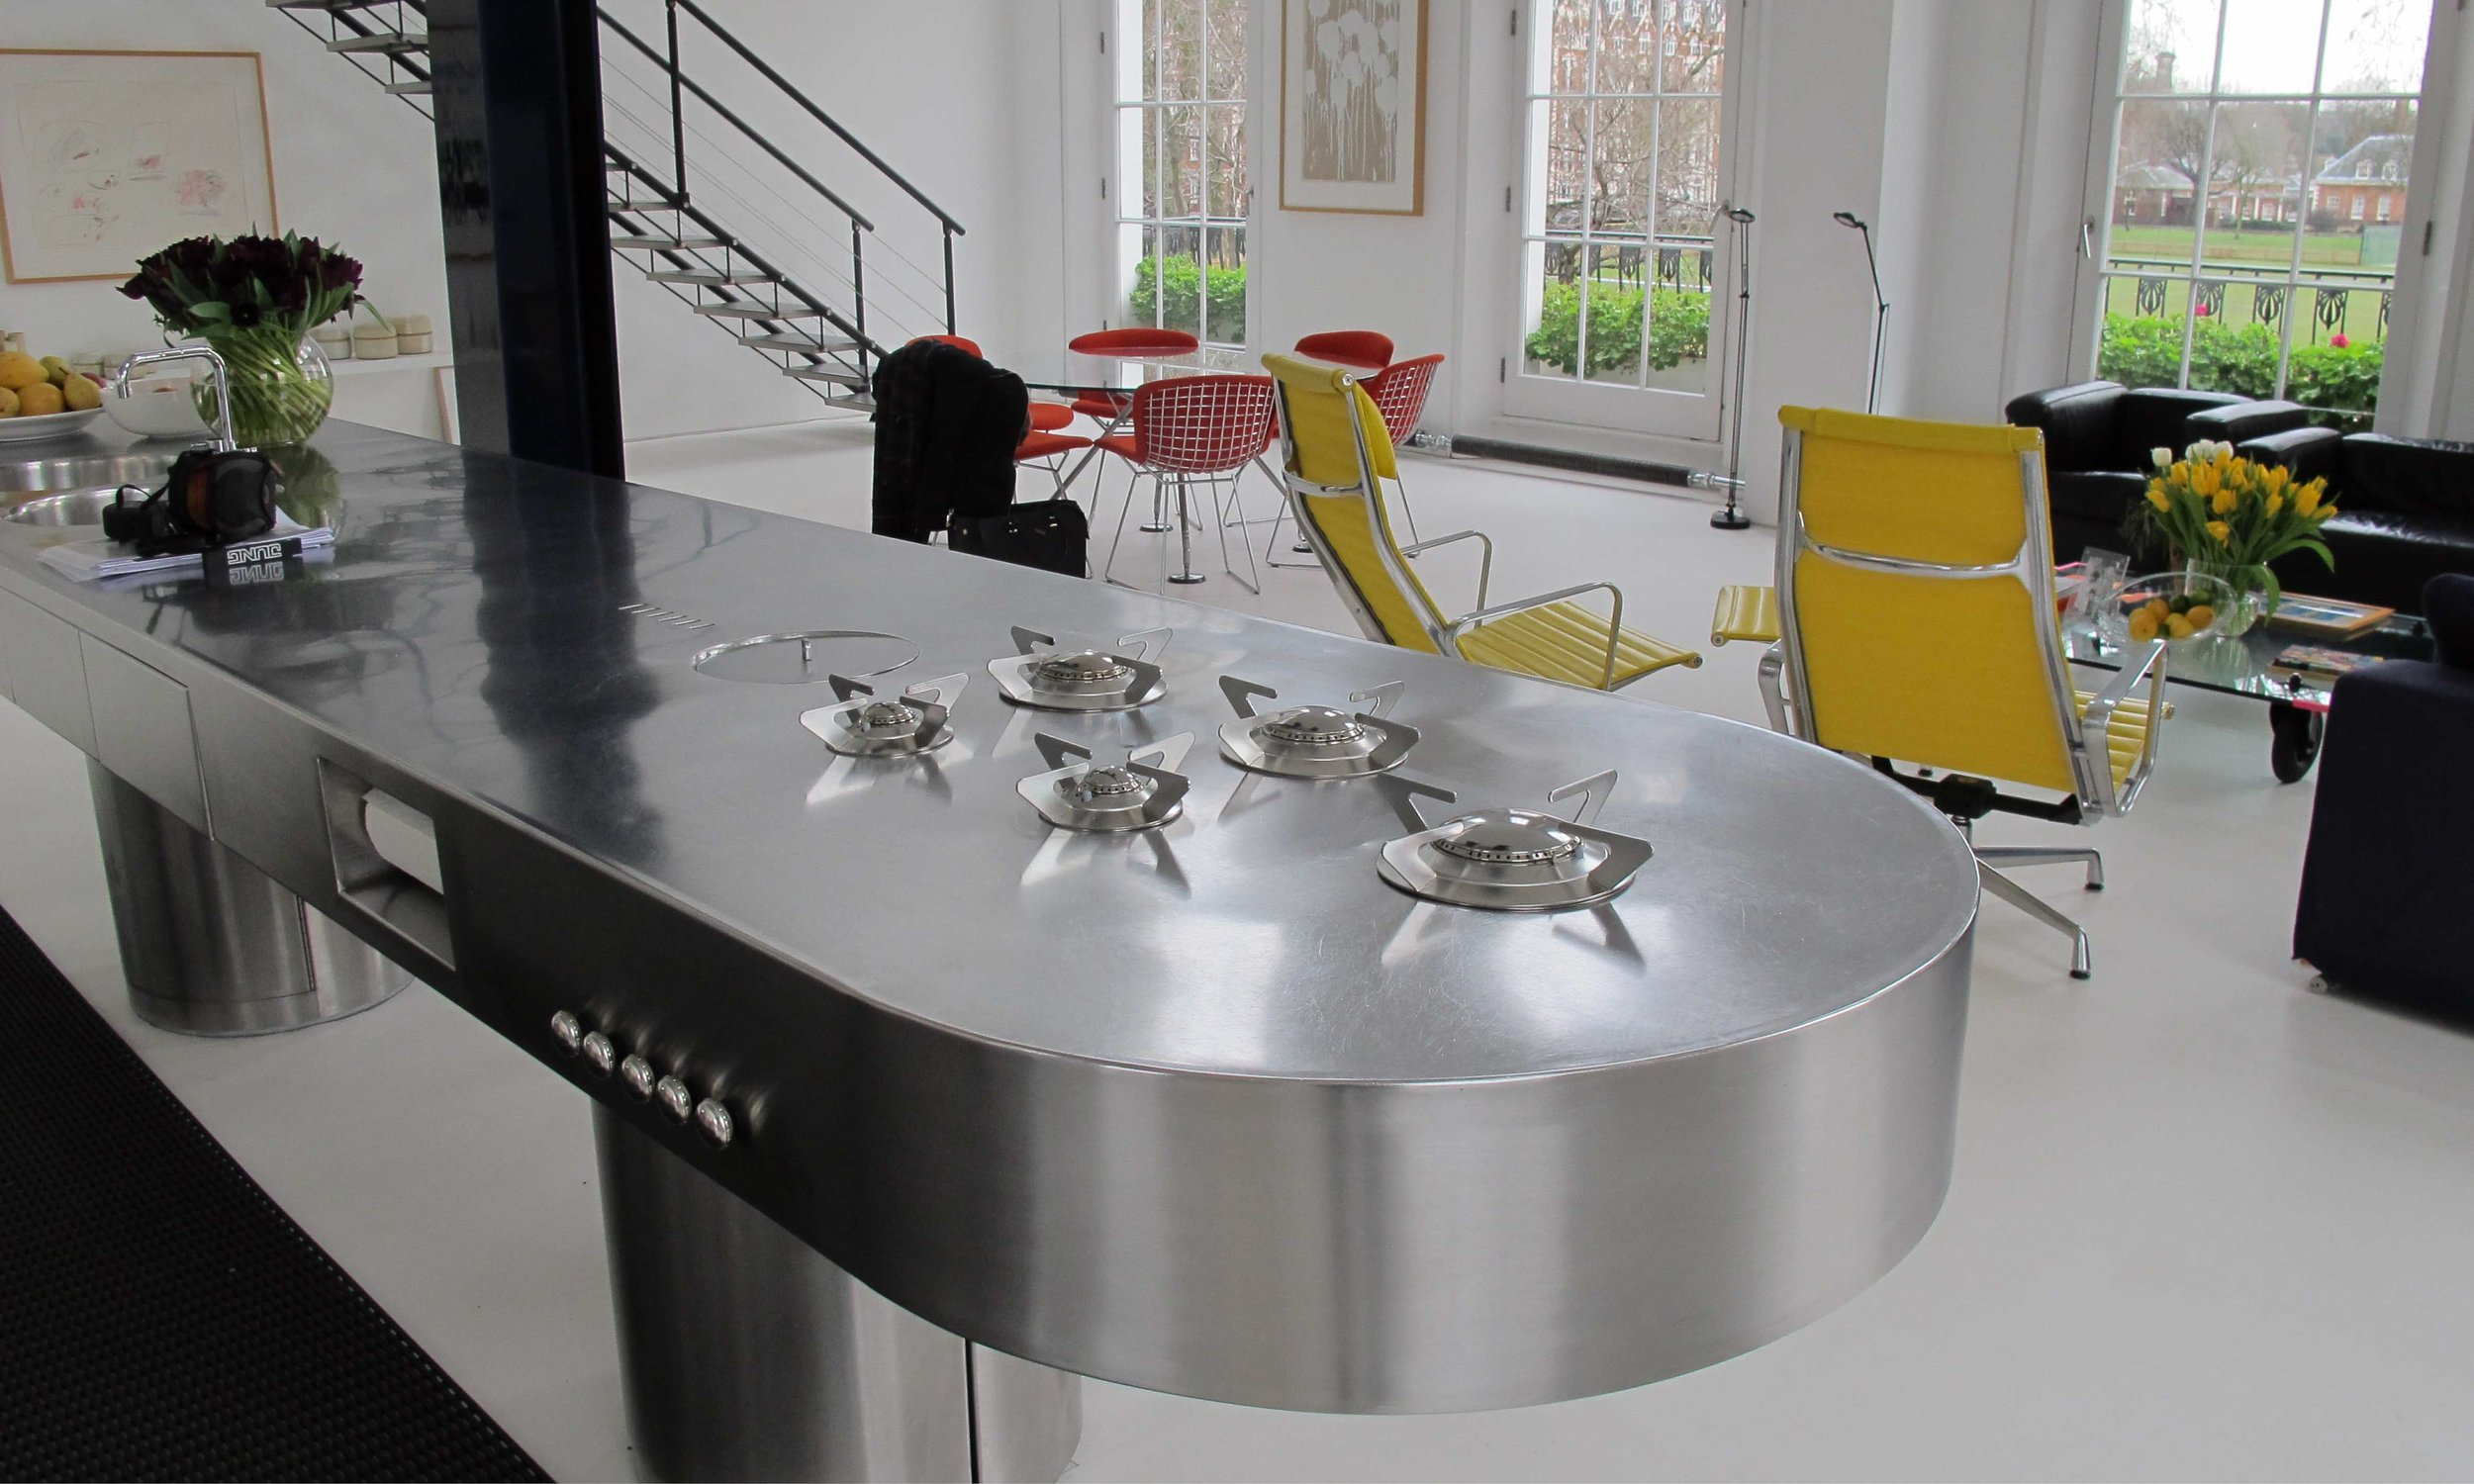 The kitchen. Polished stainless steel. Elegance and efficient in design.